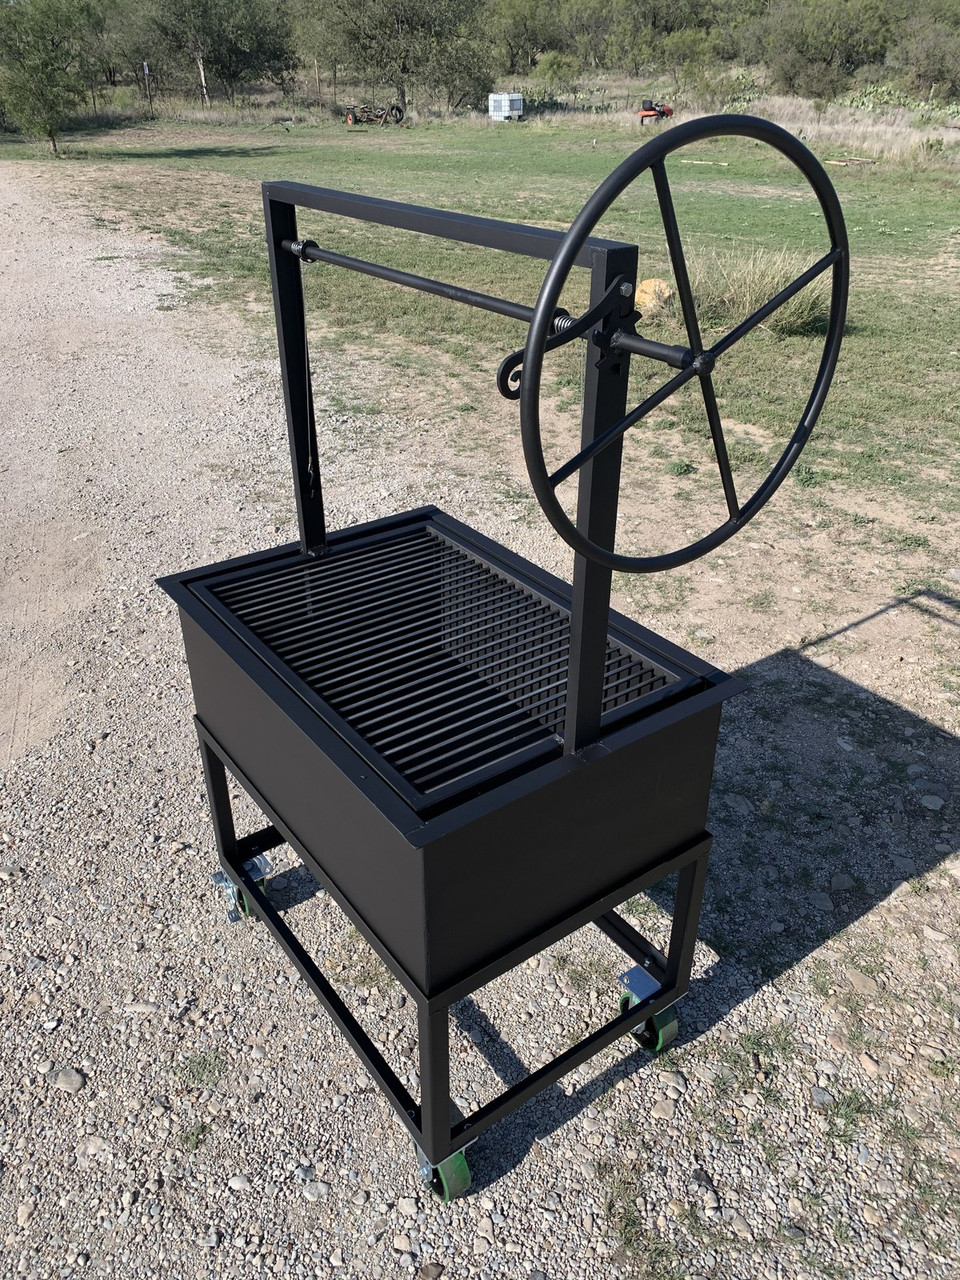 Santa Maria Grill with Cart and 4 casters adjustable Grate